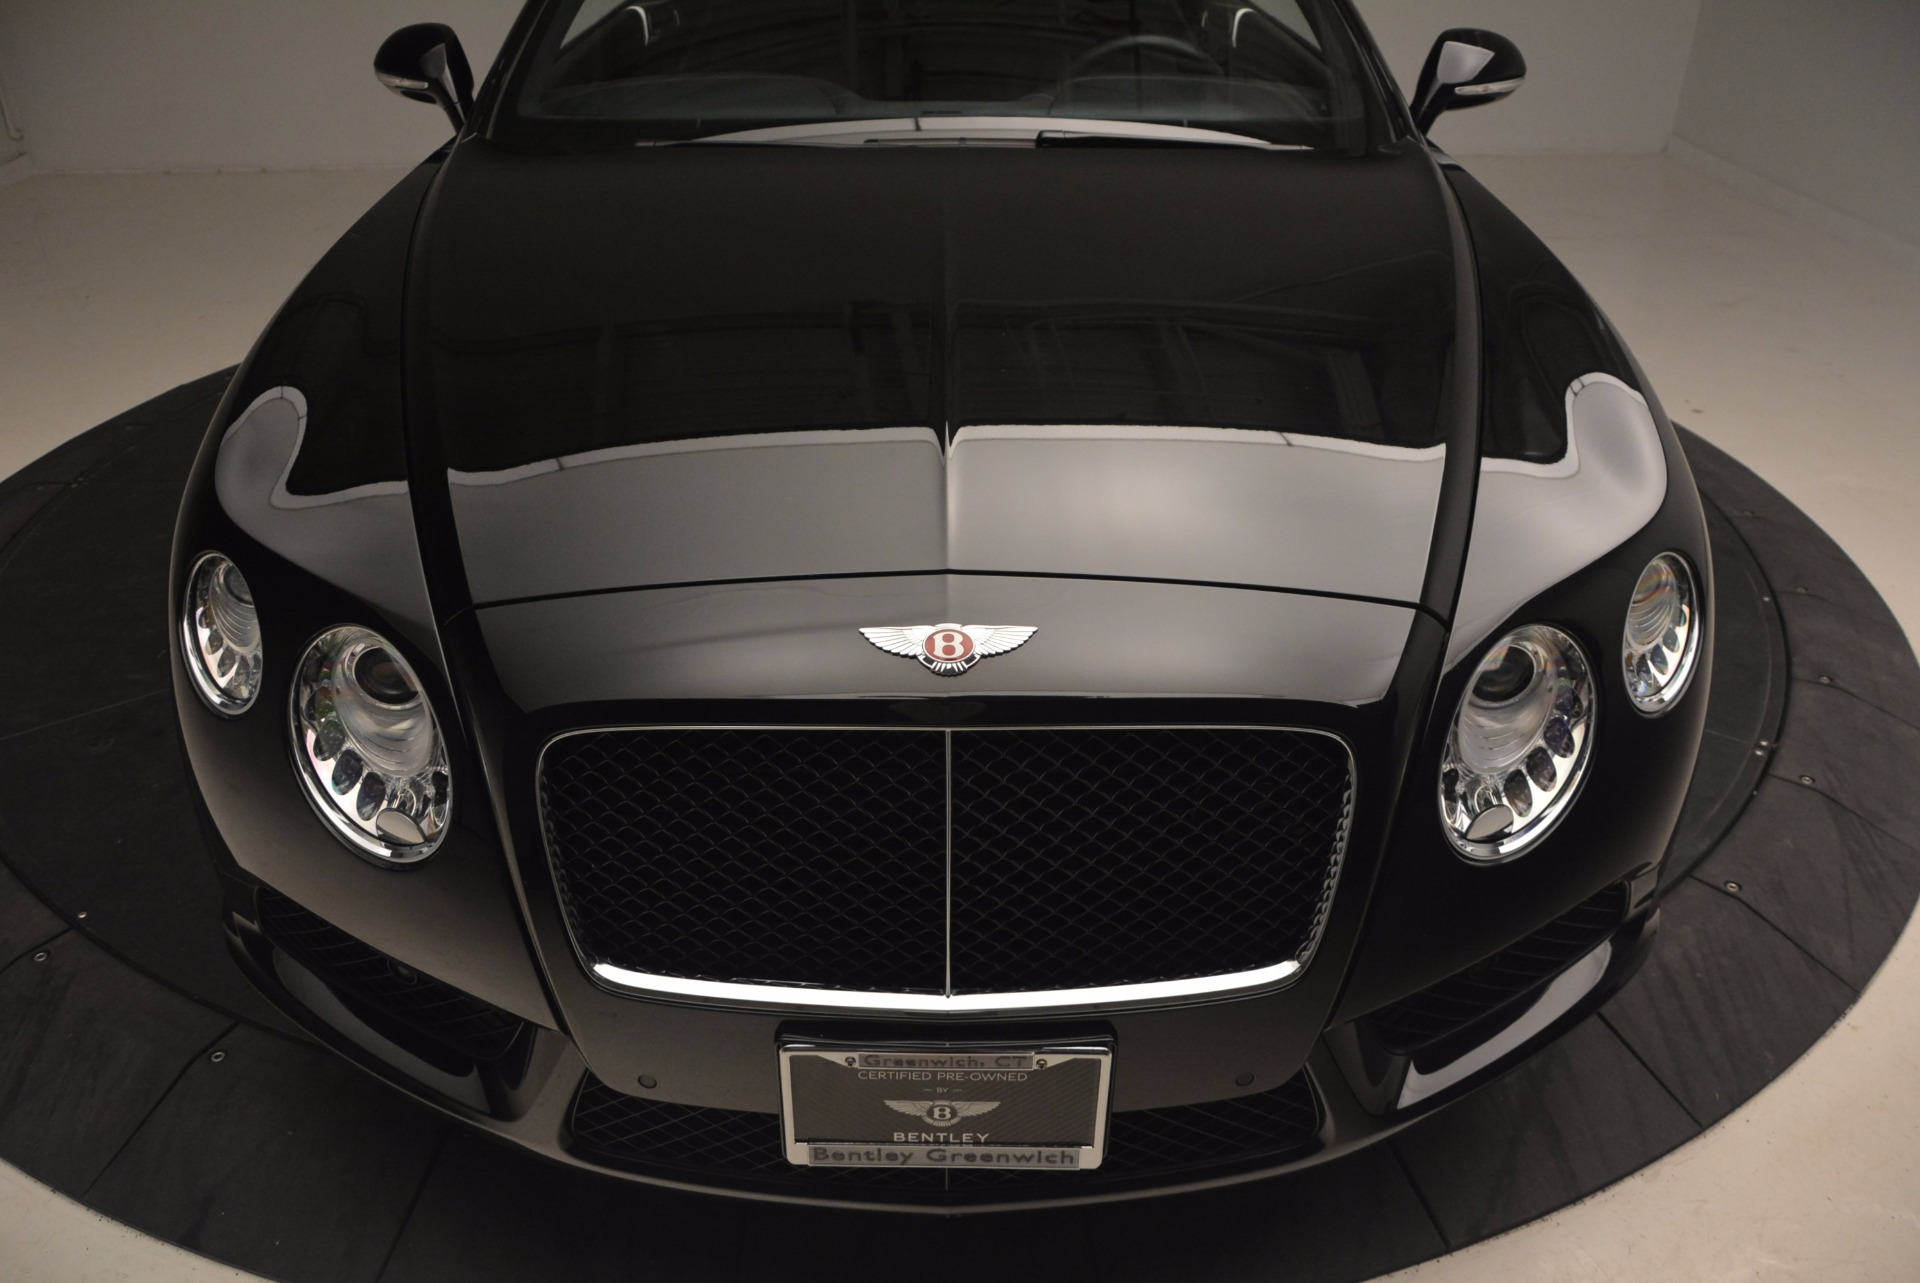 Used 2013 Bentley Continental GT V8 For Sale In Westport, CT 1291_p13